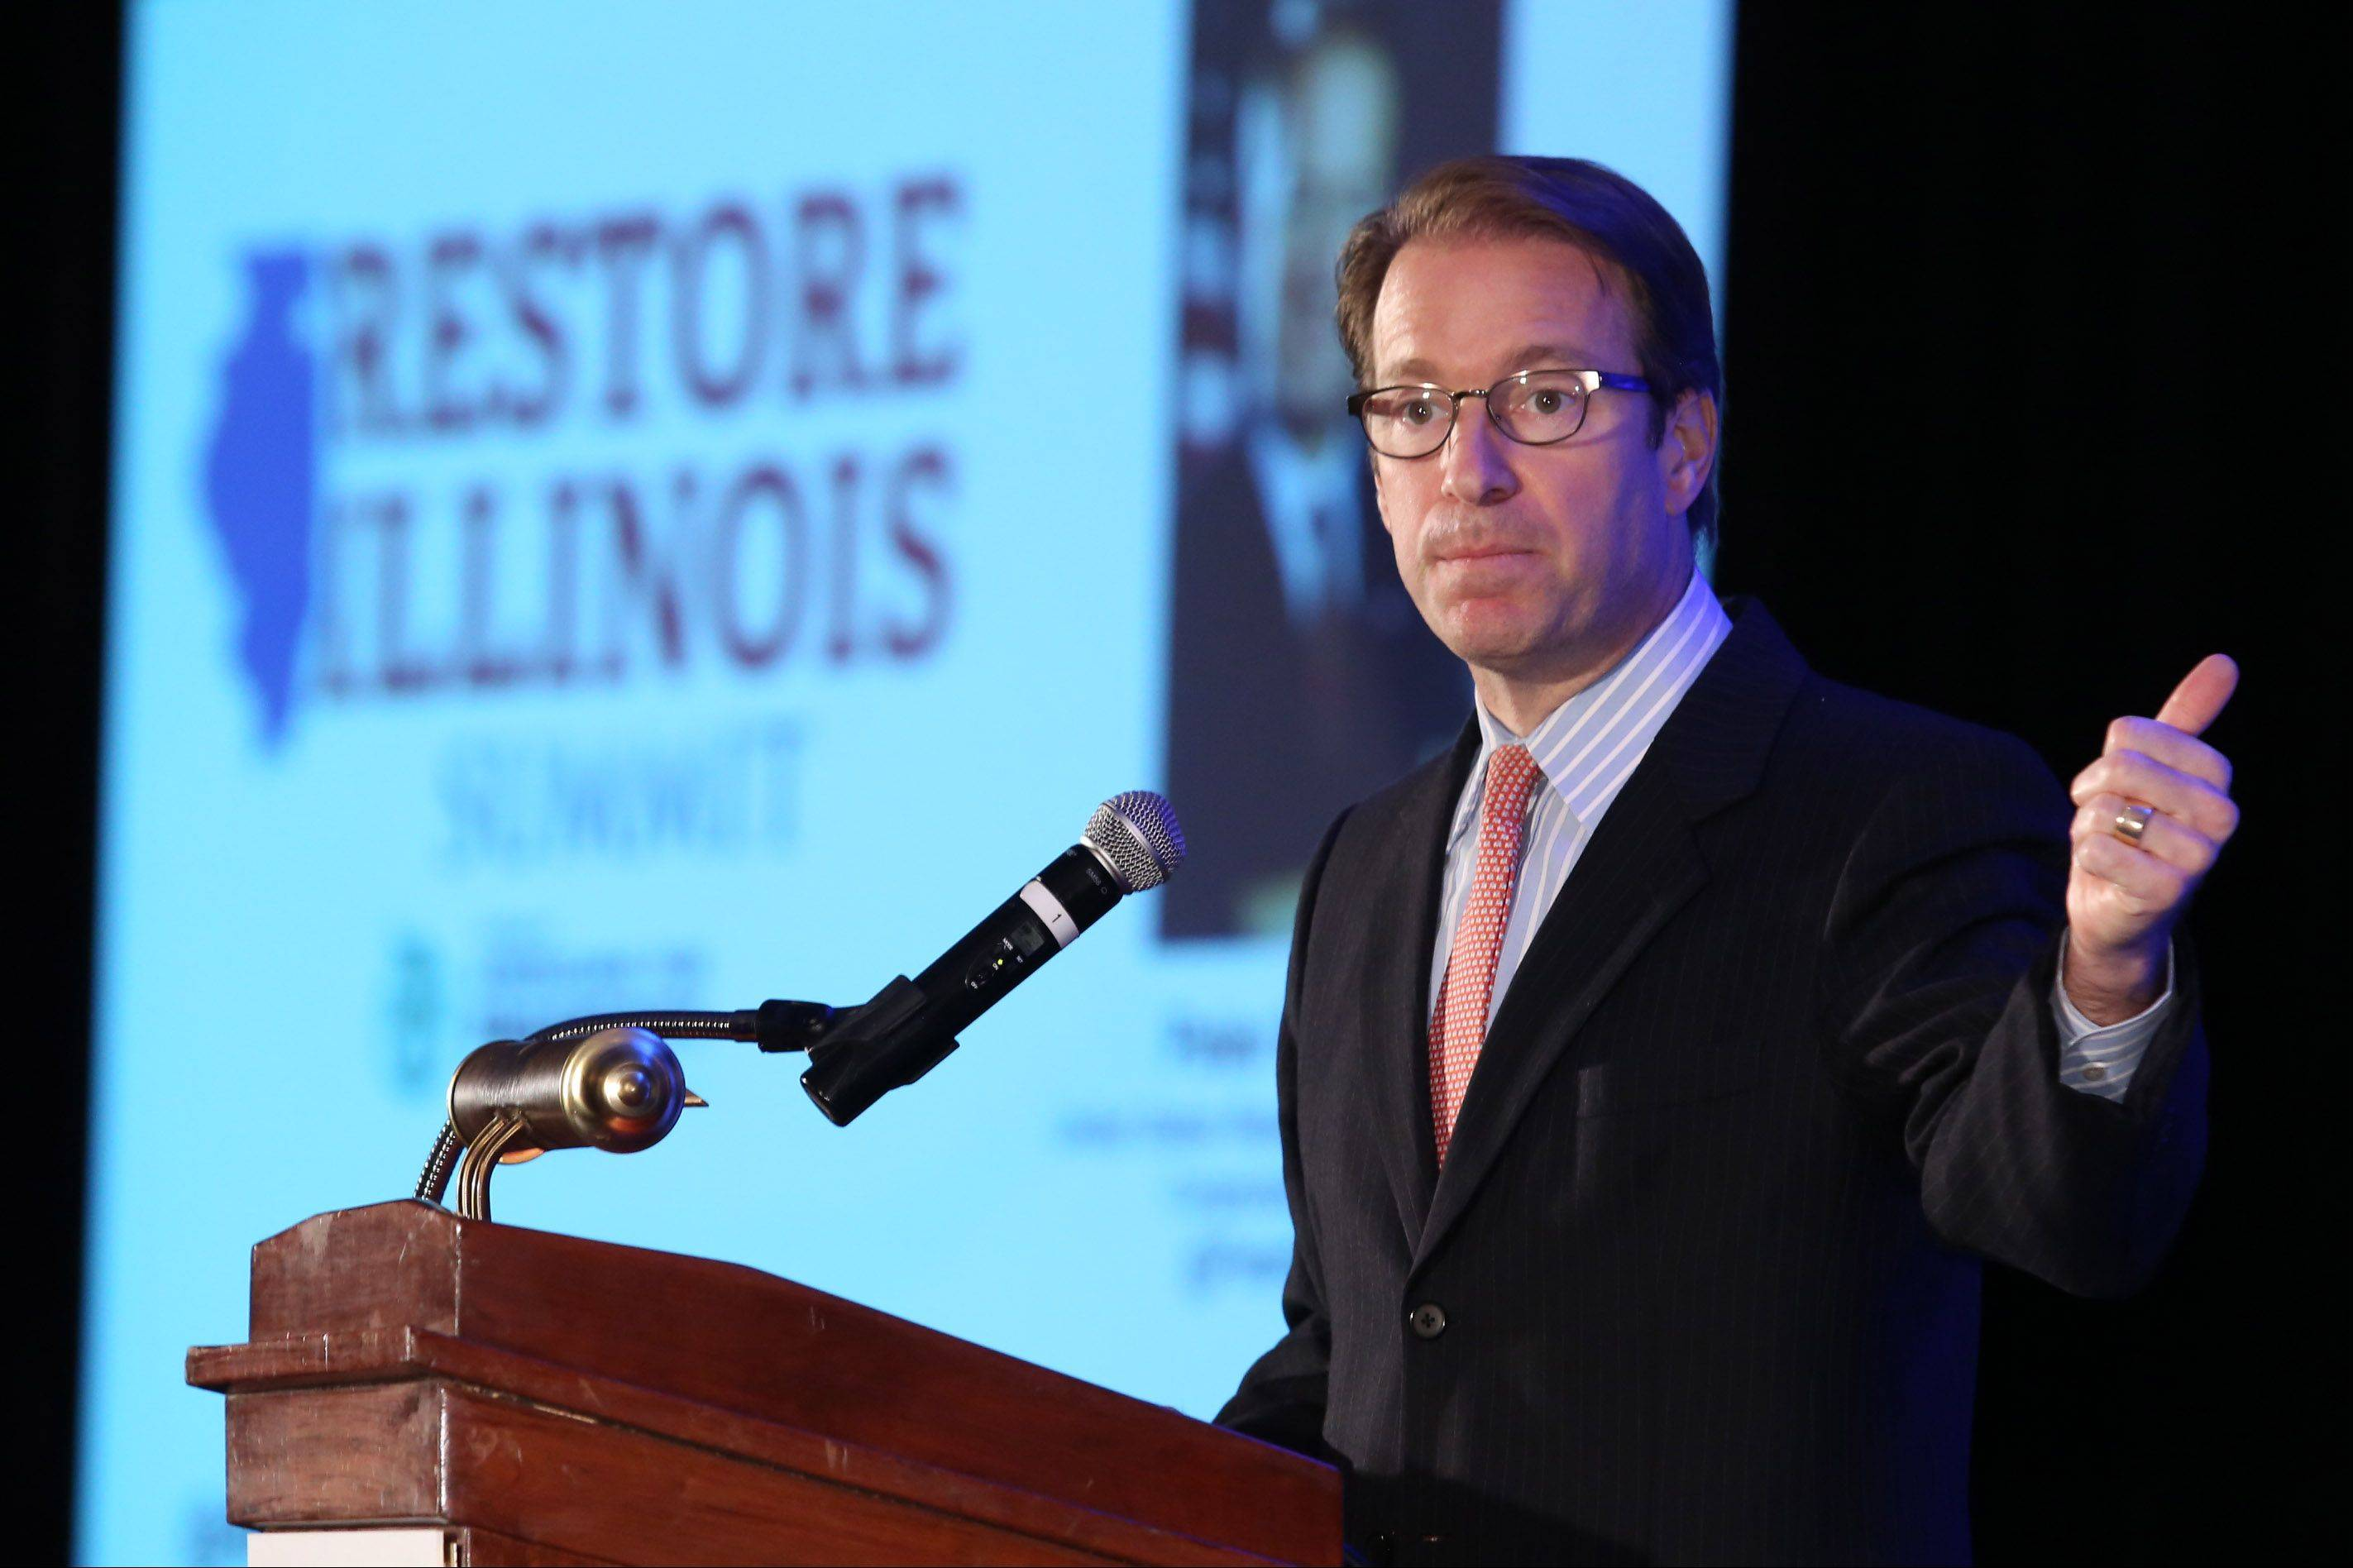 Representative Peter Roskam speaks at the Restore Illinois Summit Saturday at the Stephens Convention Center in Rosemont.